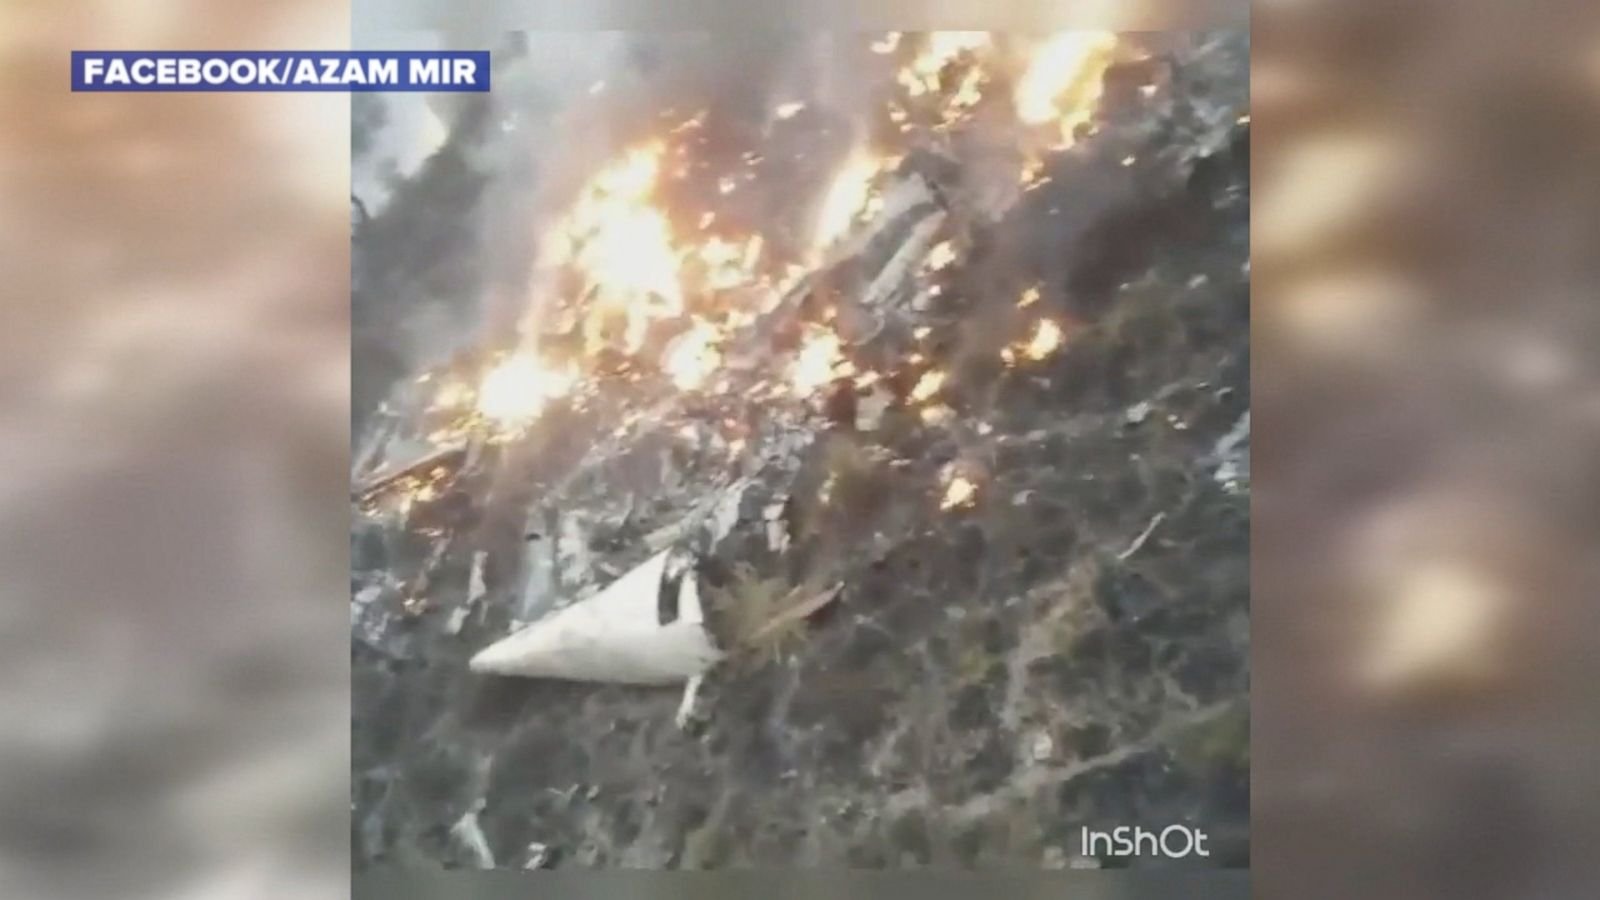 A Pakistan International Airlines flight crashed in Pakistan's Abbottabad district while en route from Chitral to Islamabad on Dec. 7.